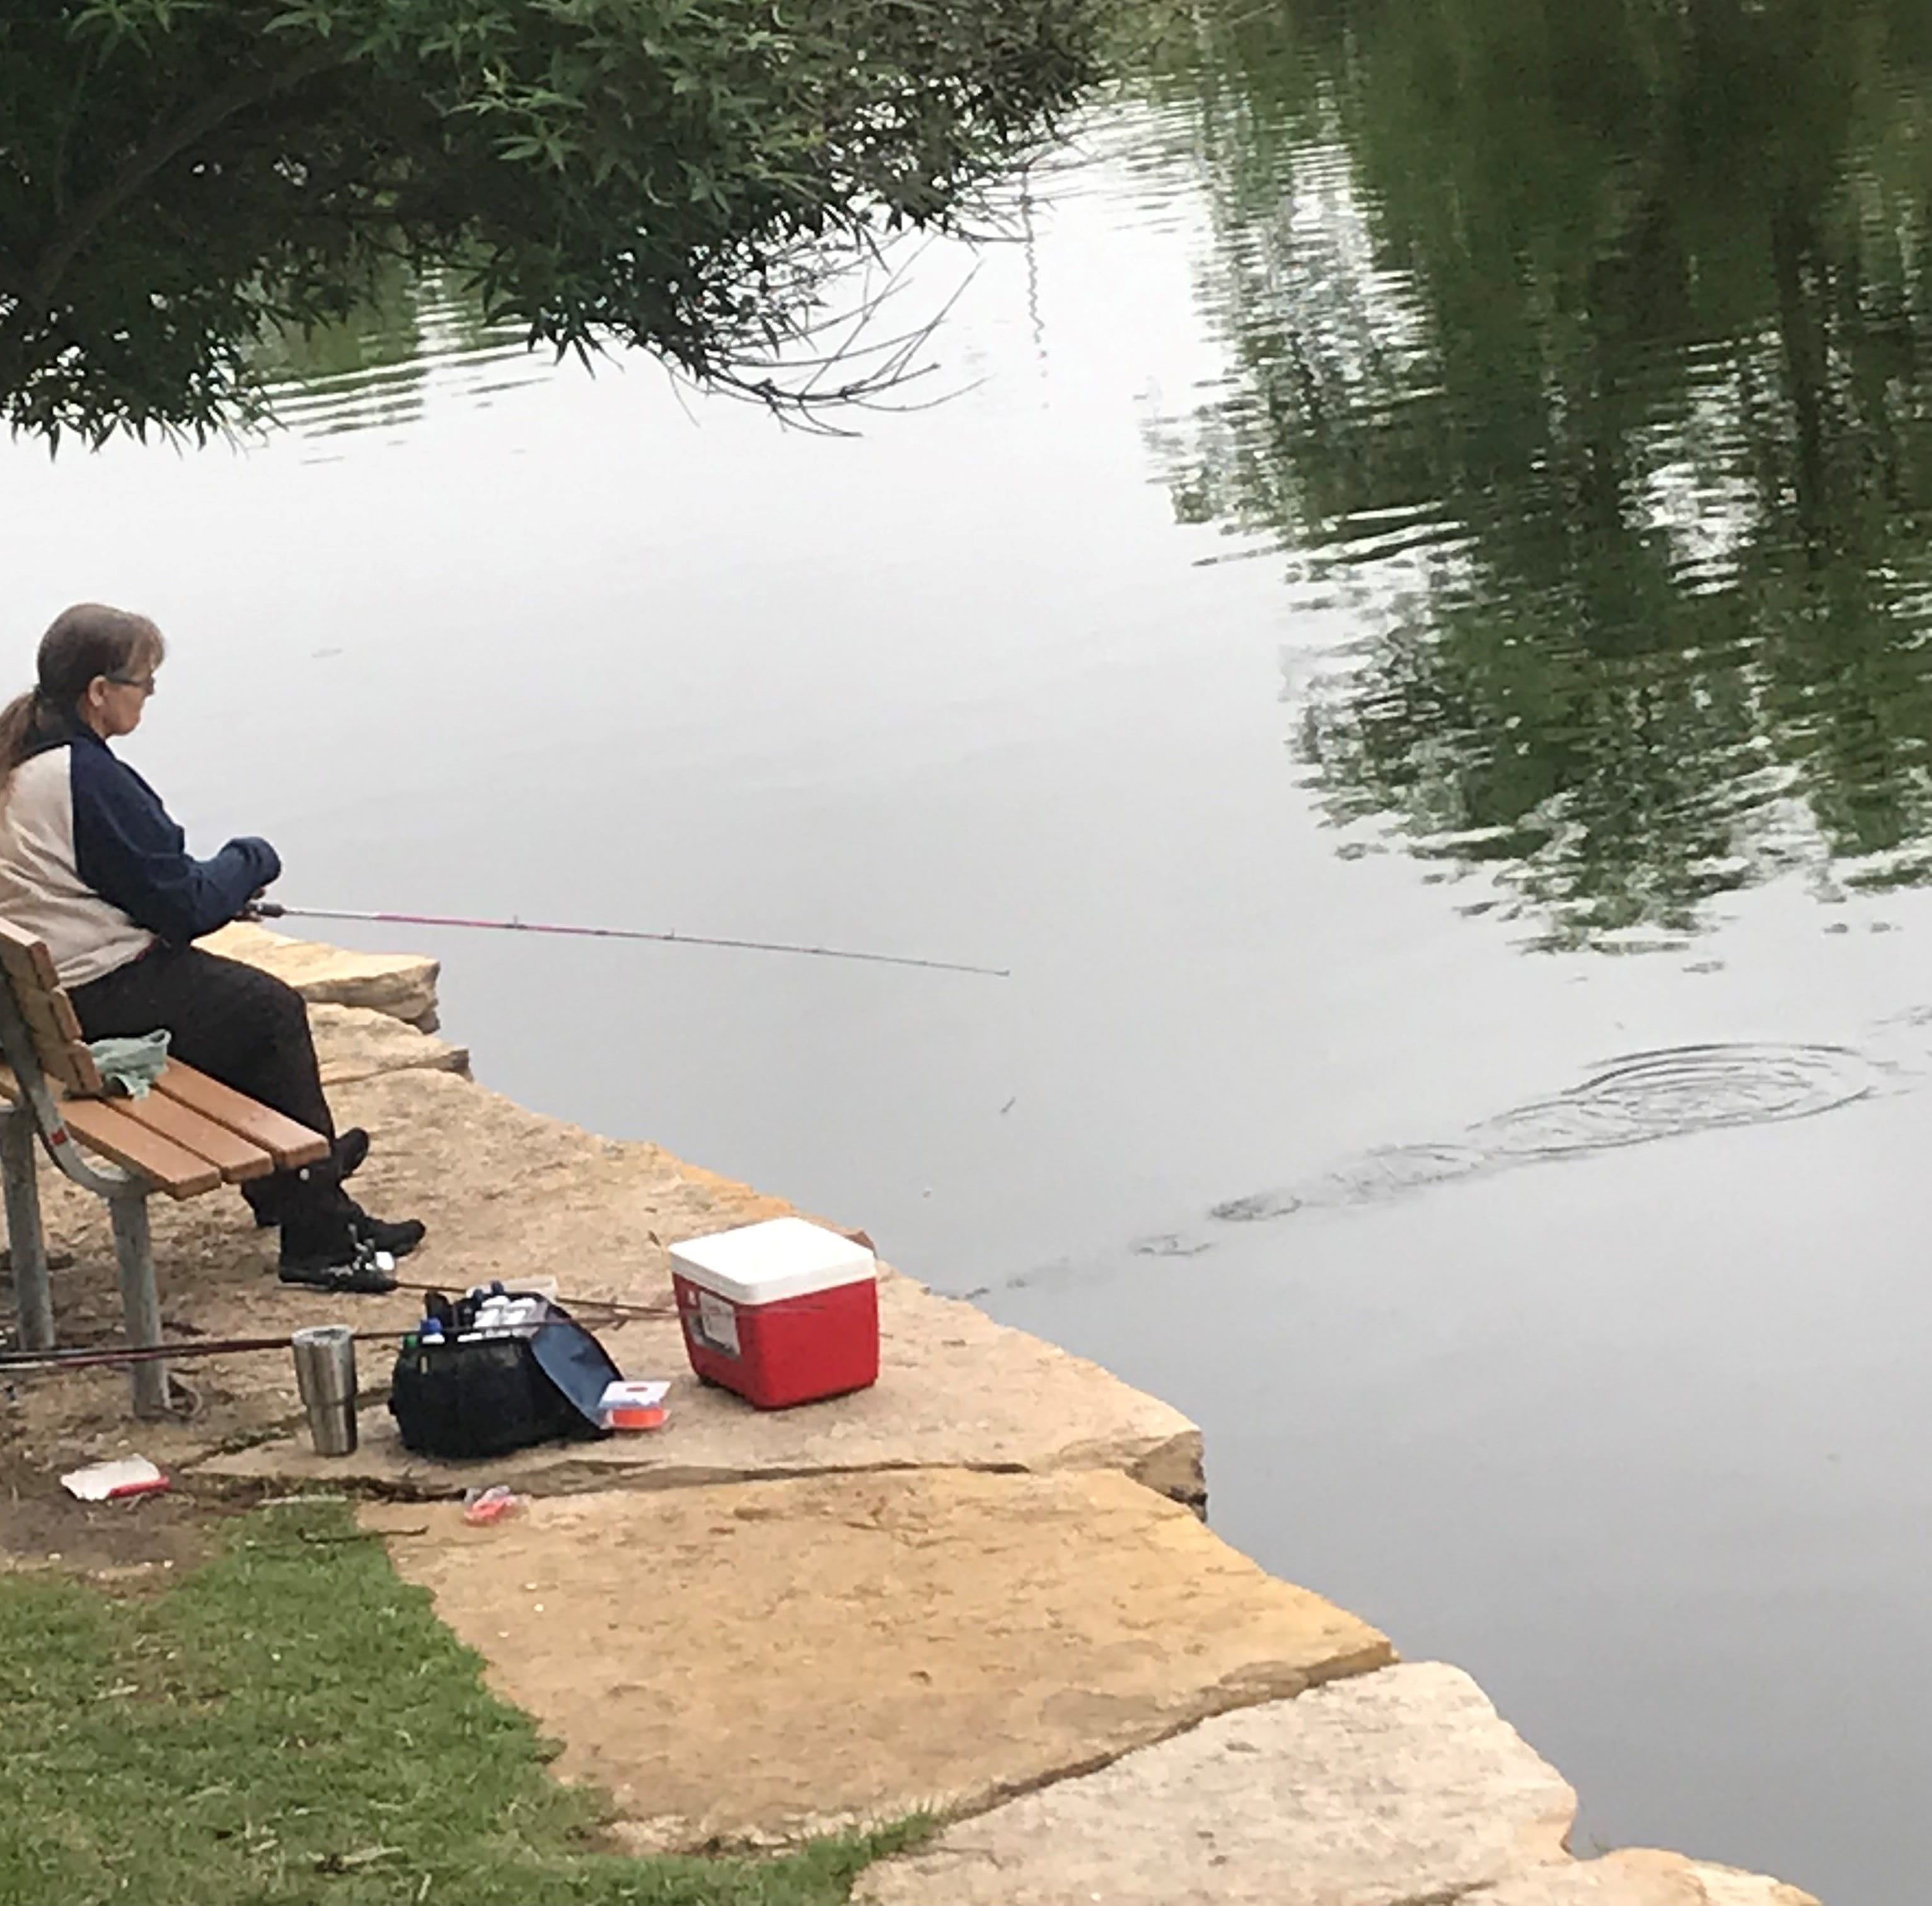 San Angeloans enjoy day of fishing after Concho River stocked with over 600 catfish